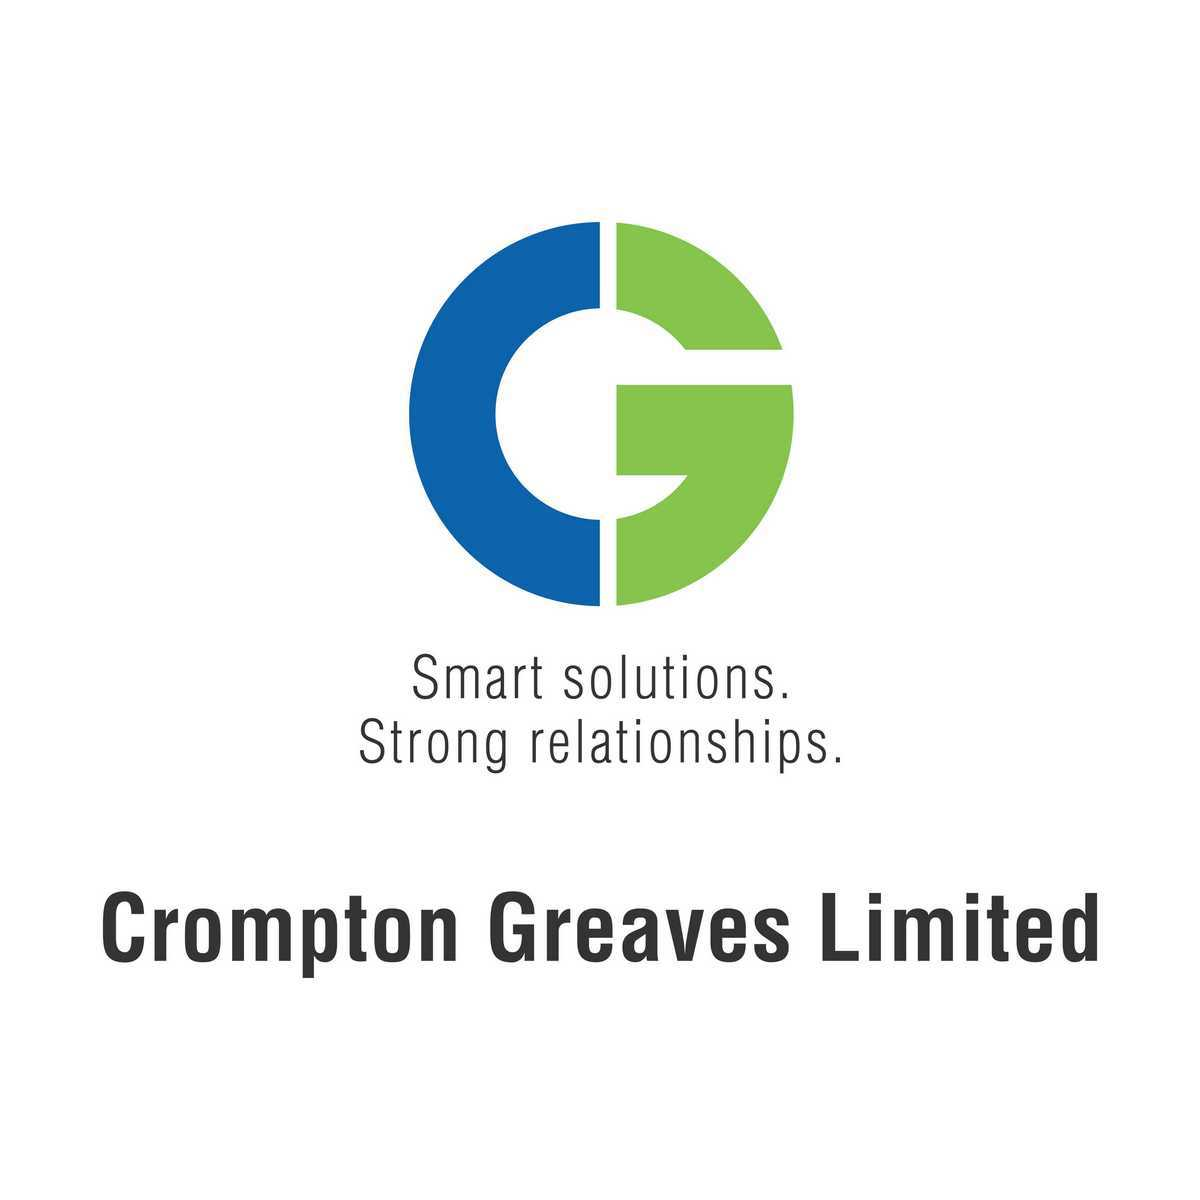 Marketing Mix of Crompton Greaves - 3